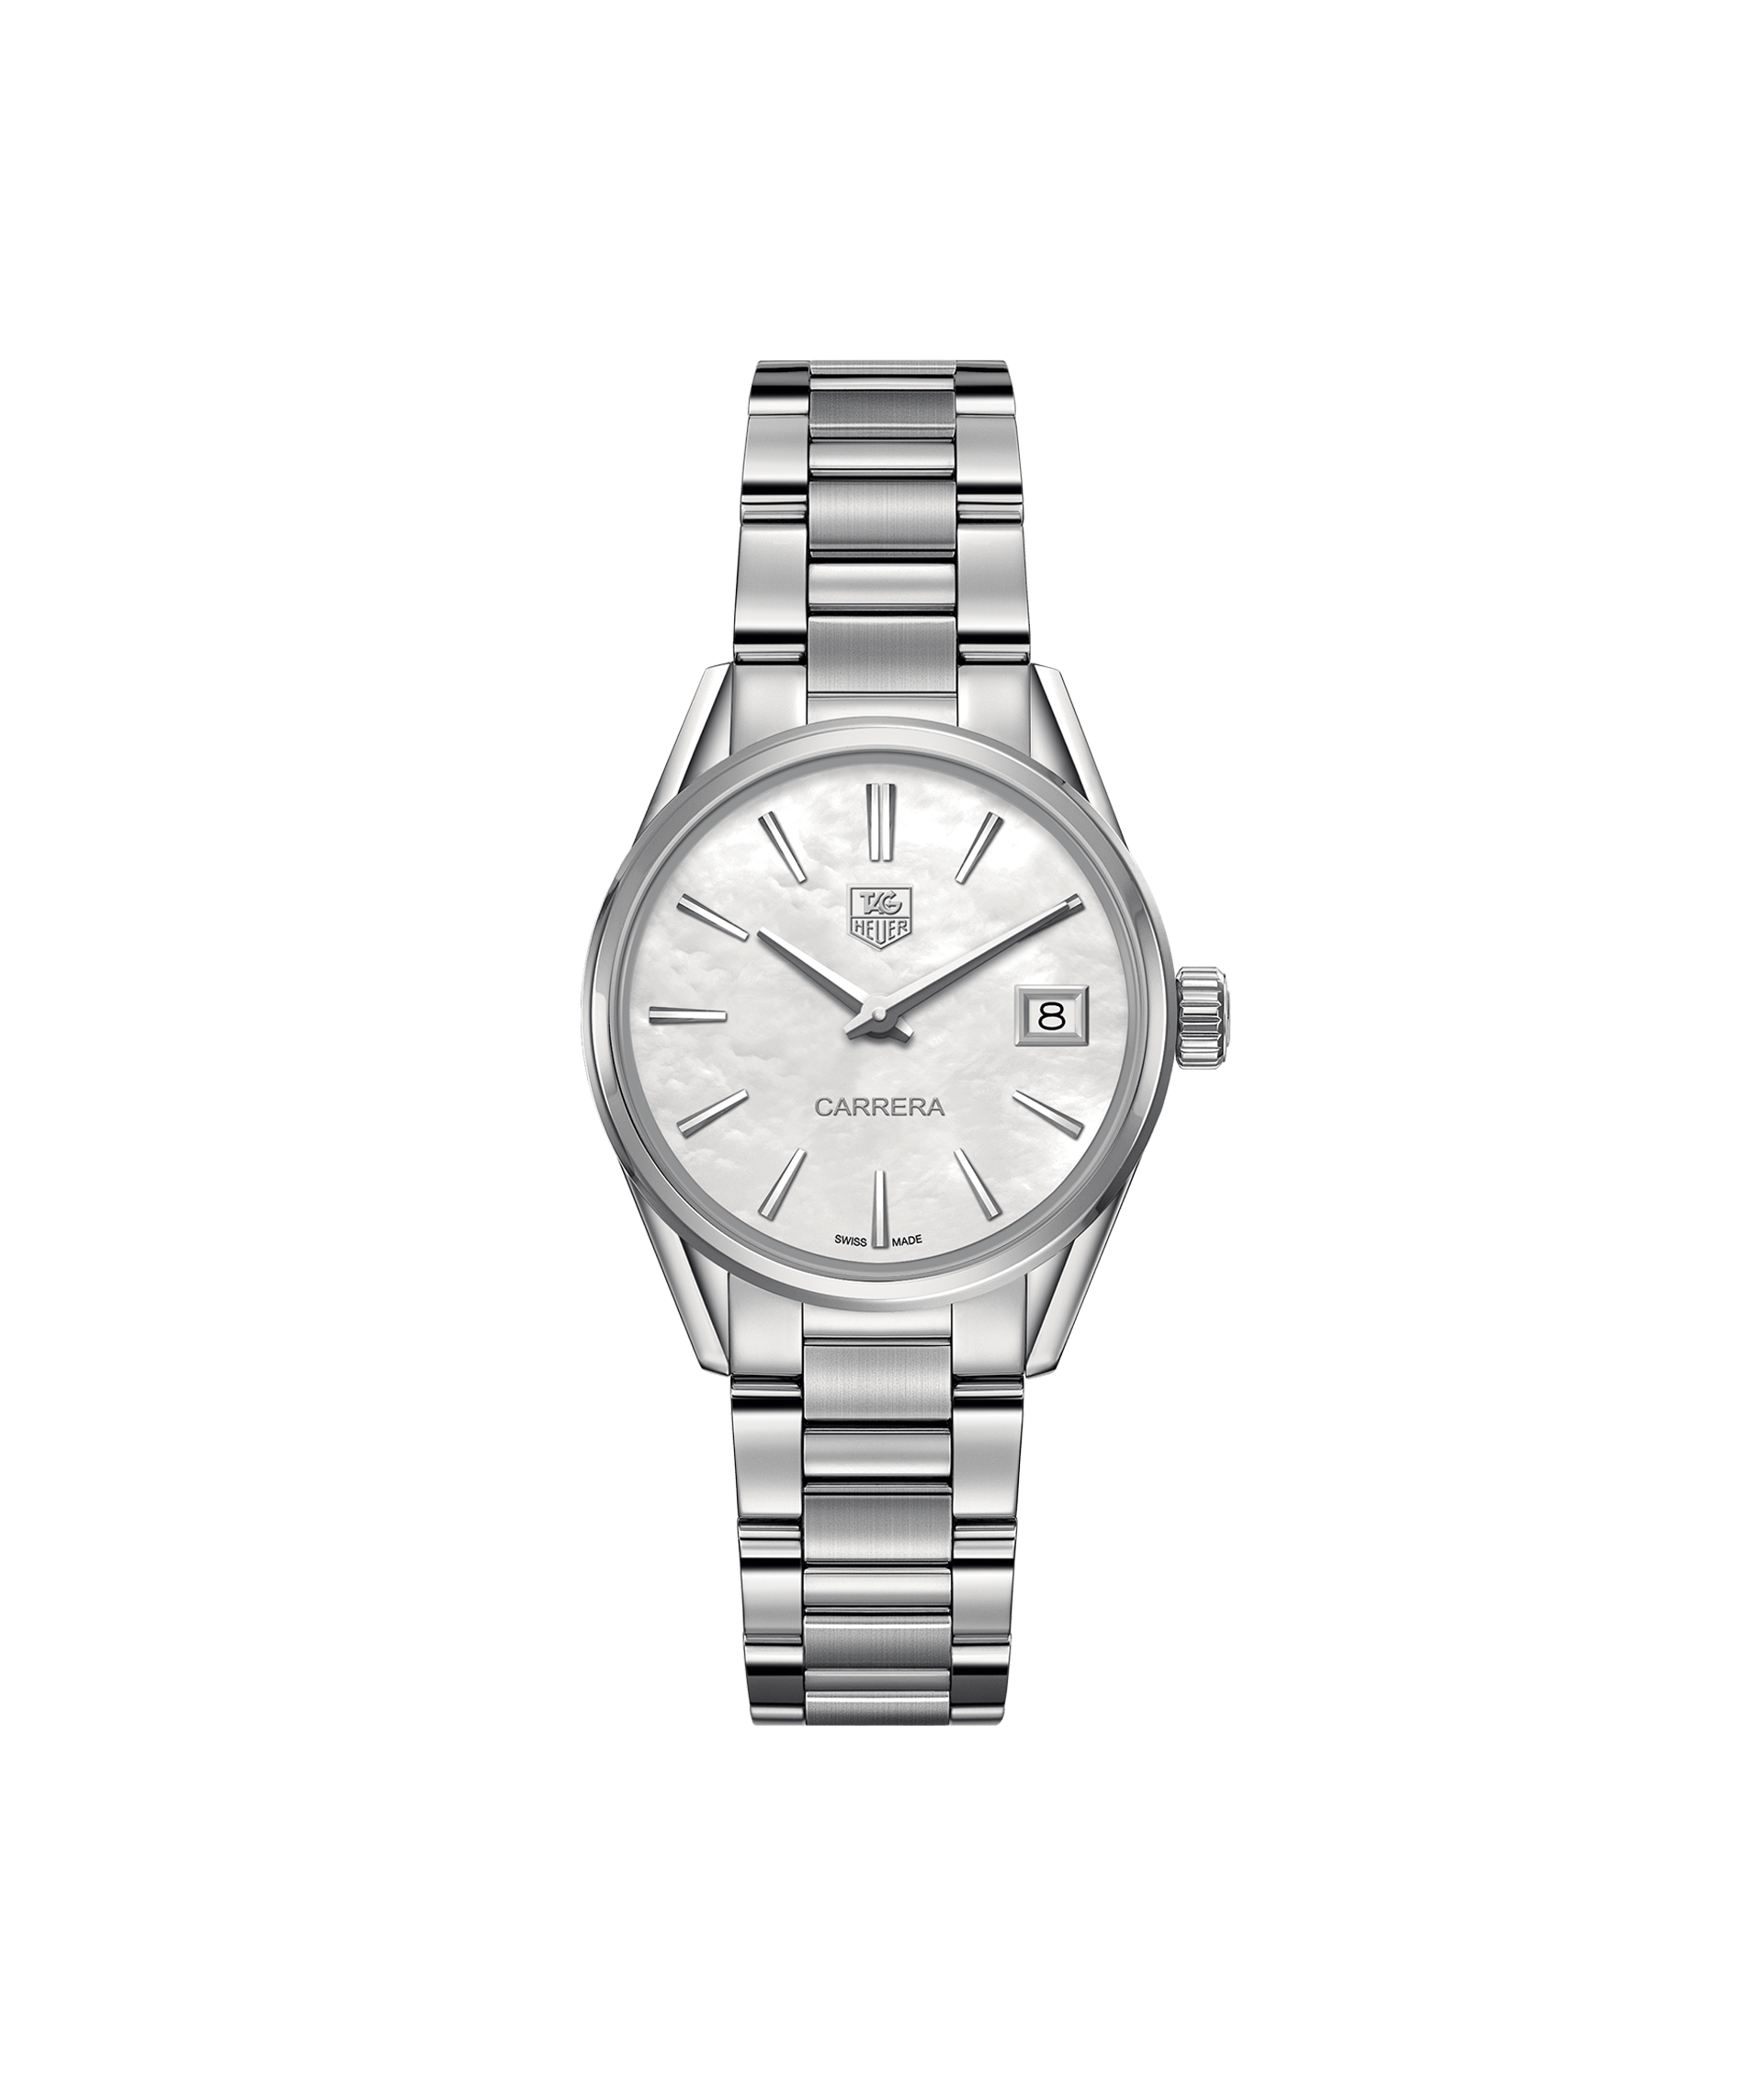 TAG HEUER CARRERA 100 m - 32mm - WAR1311.BA0778